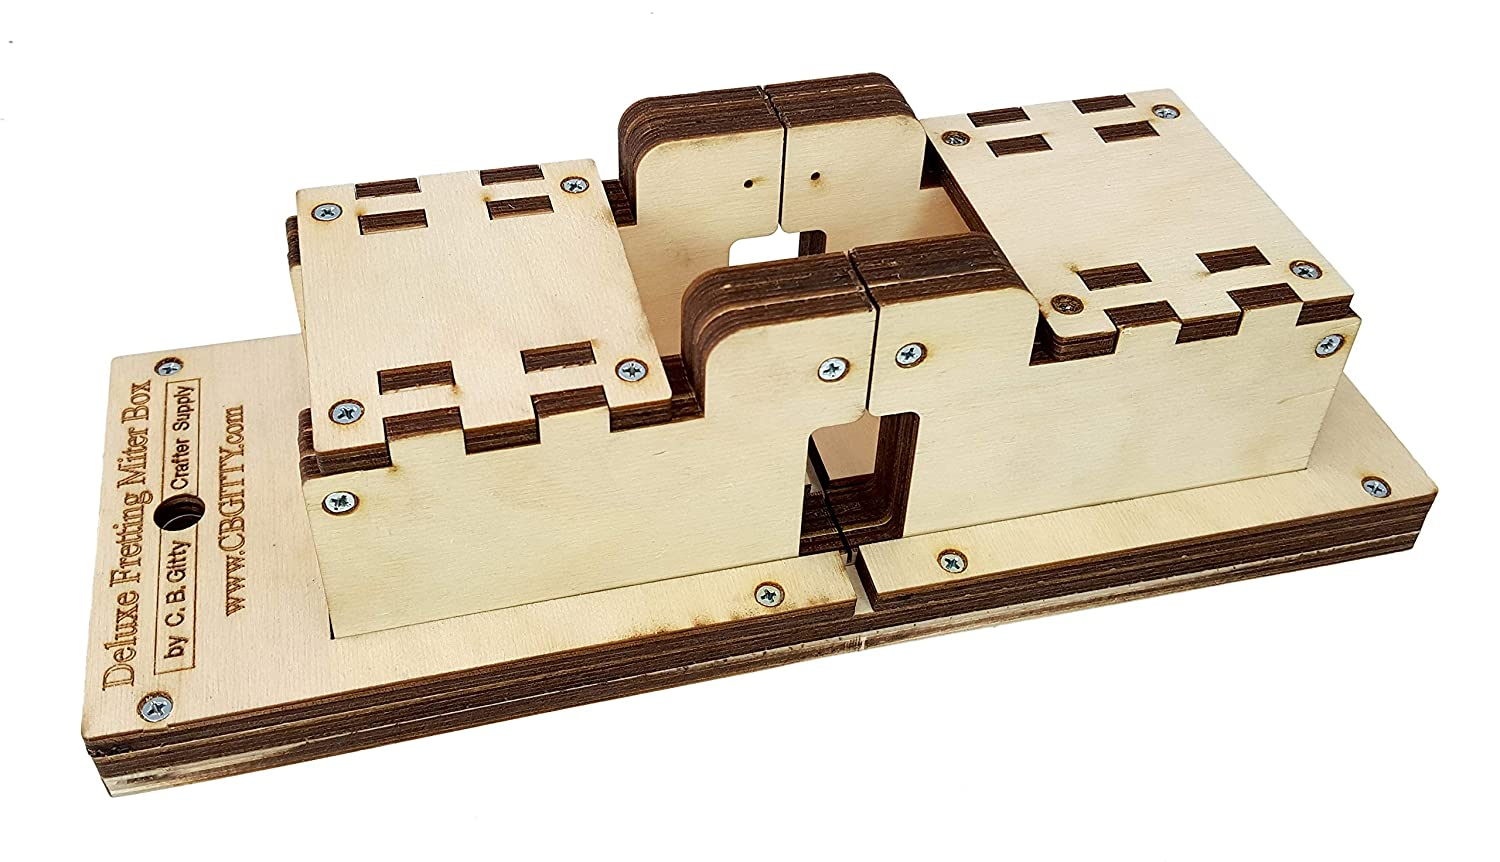 Deluxe Fretting Miter Box Kit - Cut Perfect Fret Slots in Necks and Fretboards C. B. Gitty Crafter Supply